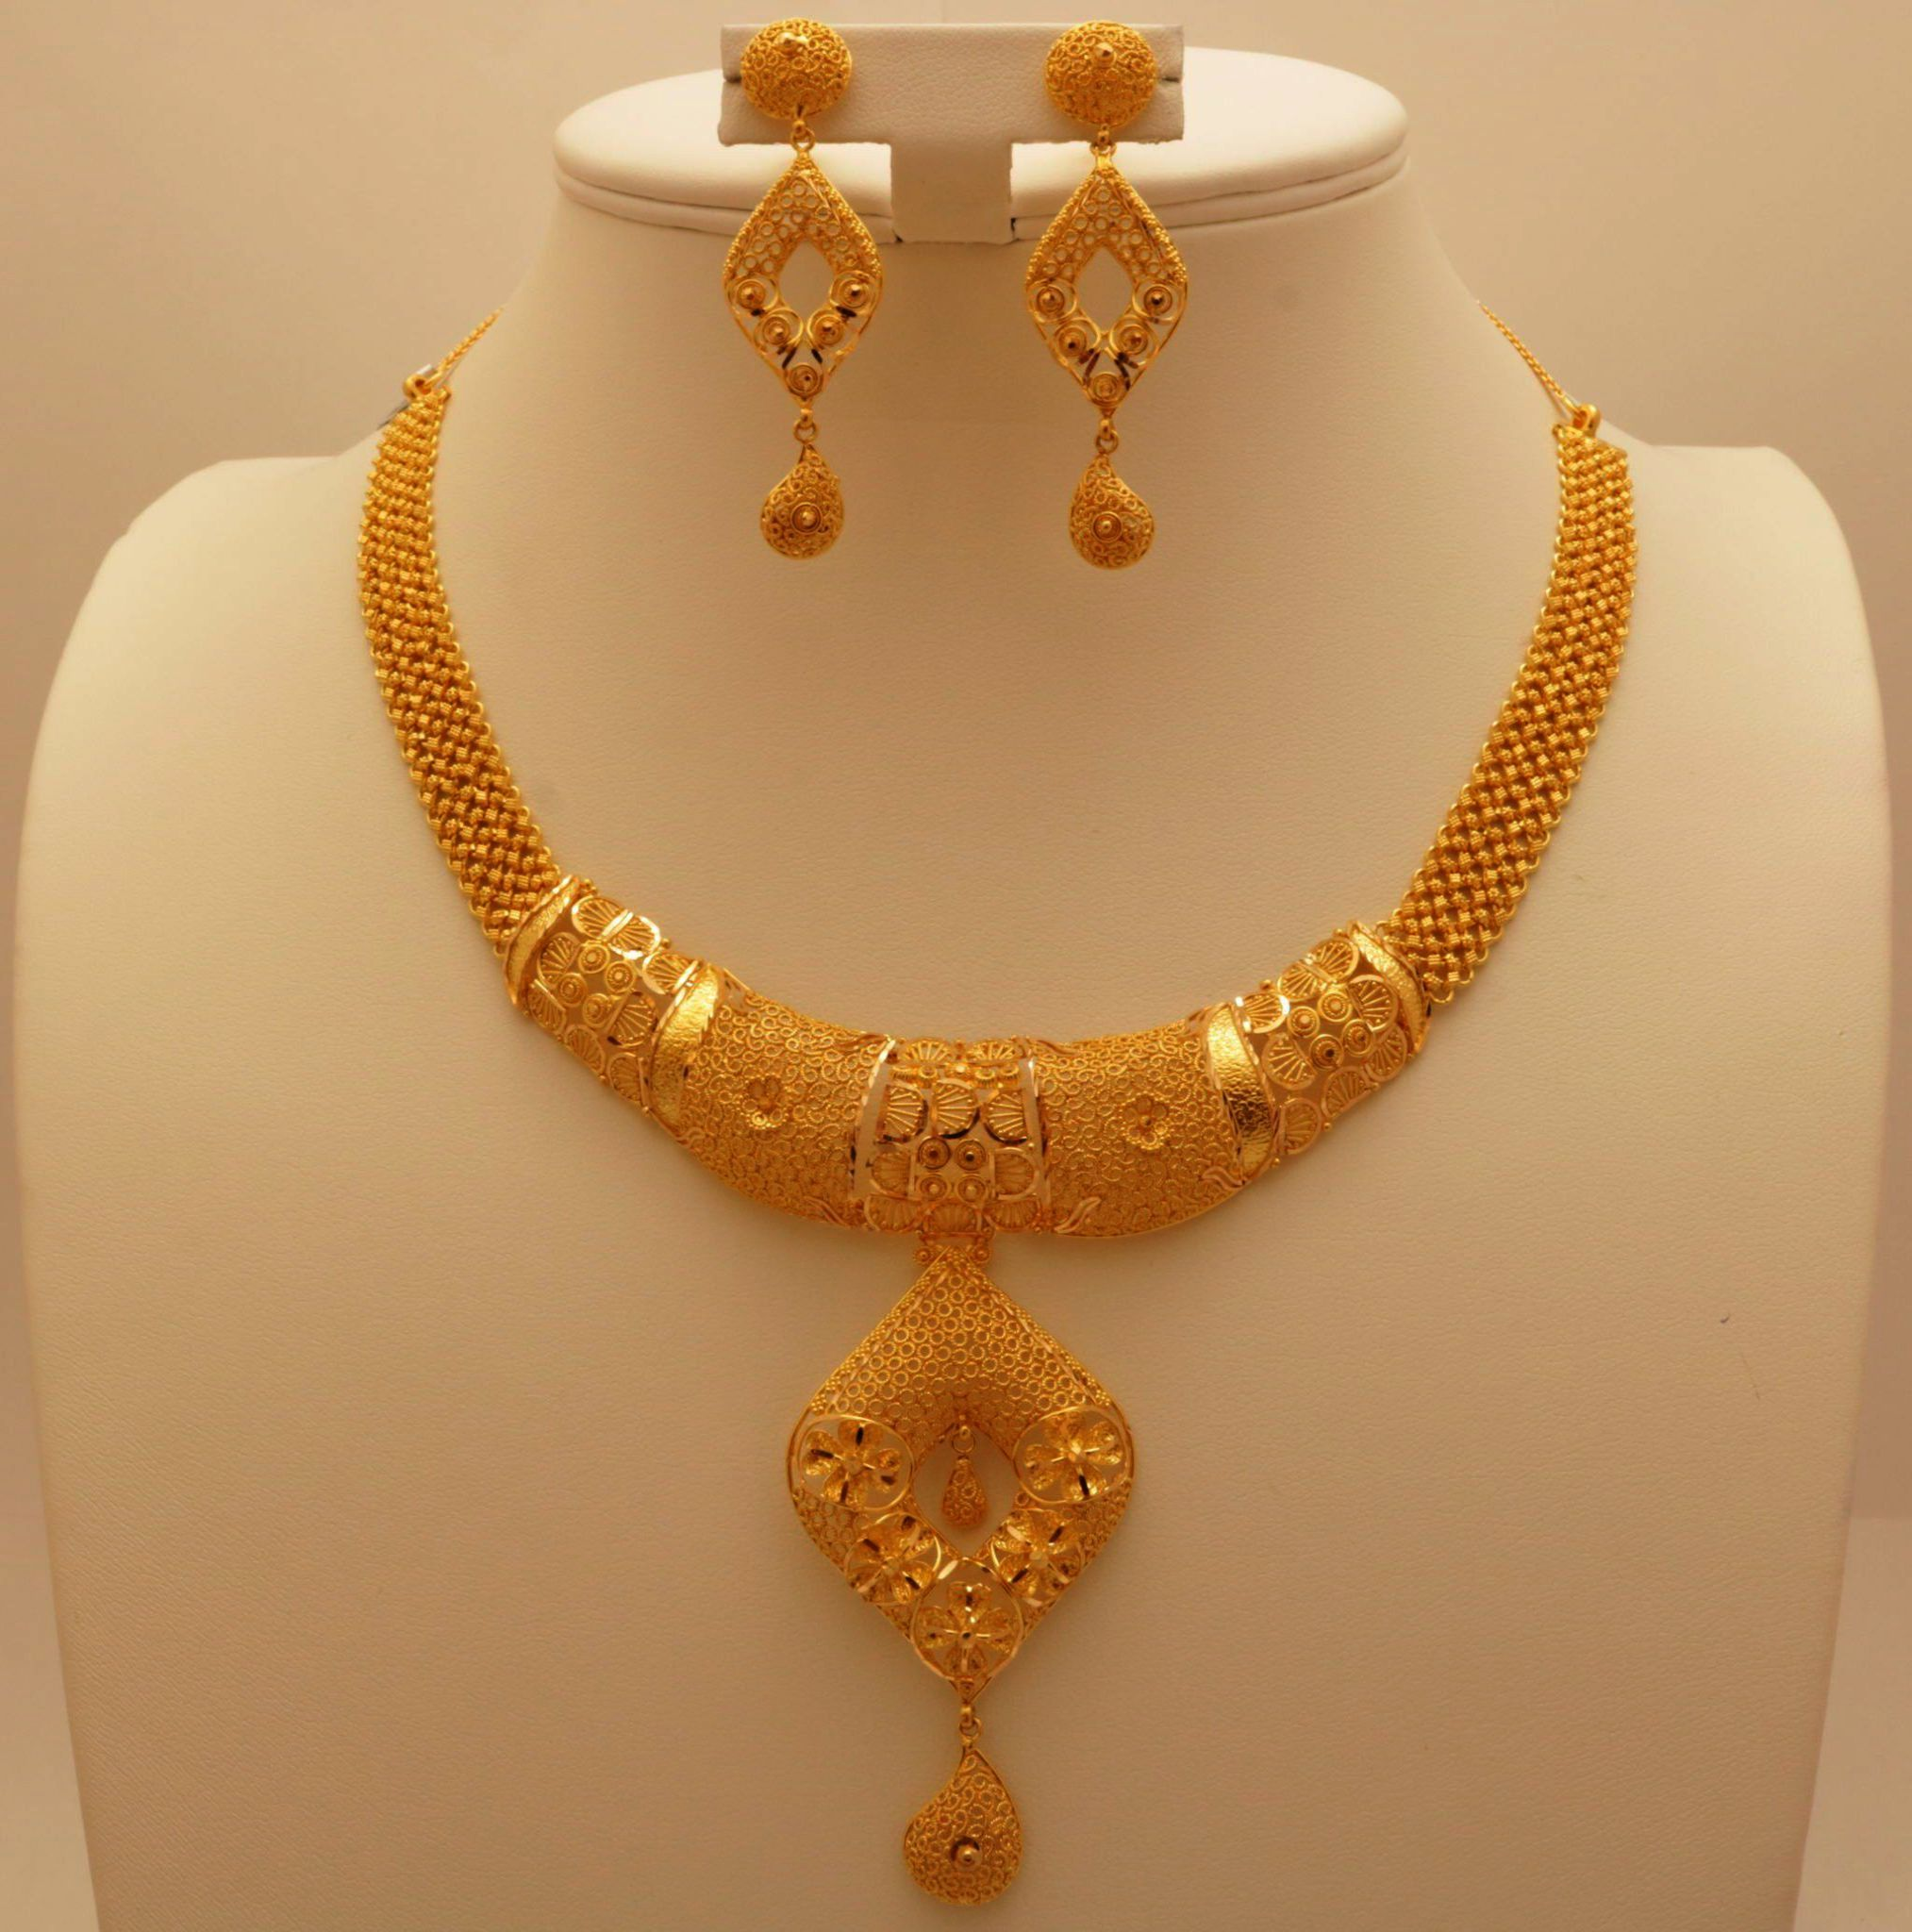 Jewellery Box For 8 Year Old Only Jewellery Shops Cork Gold Necklace Designs Gold Necklace Set Gold Jewelry Necklace